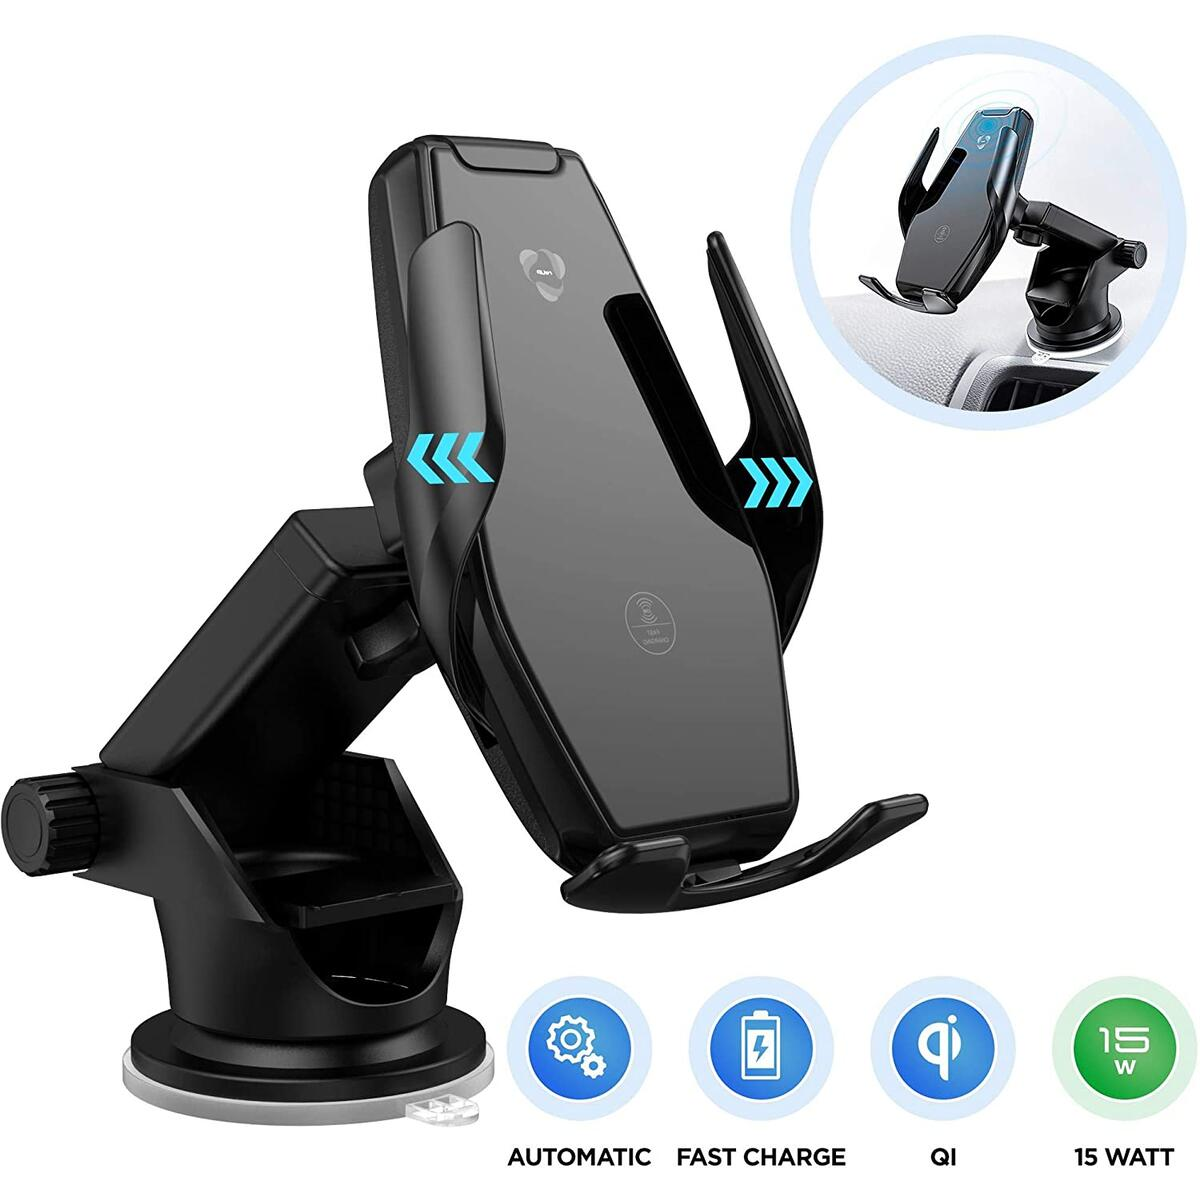 Wireless Car Charger 15W Qi Fast Charging Infrared Sensor Automatic Clamping Mount Windshield Dash Air Vent Holder Dual 3.0A Quick Charge USB Ports Compatible with iPhone Samsung Galaxy LG Smartphone…